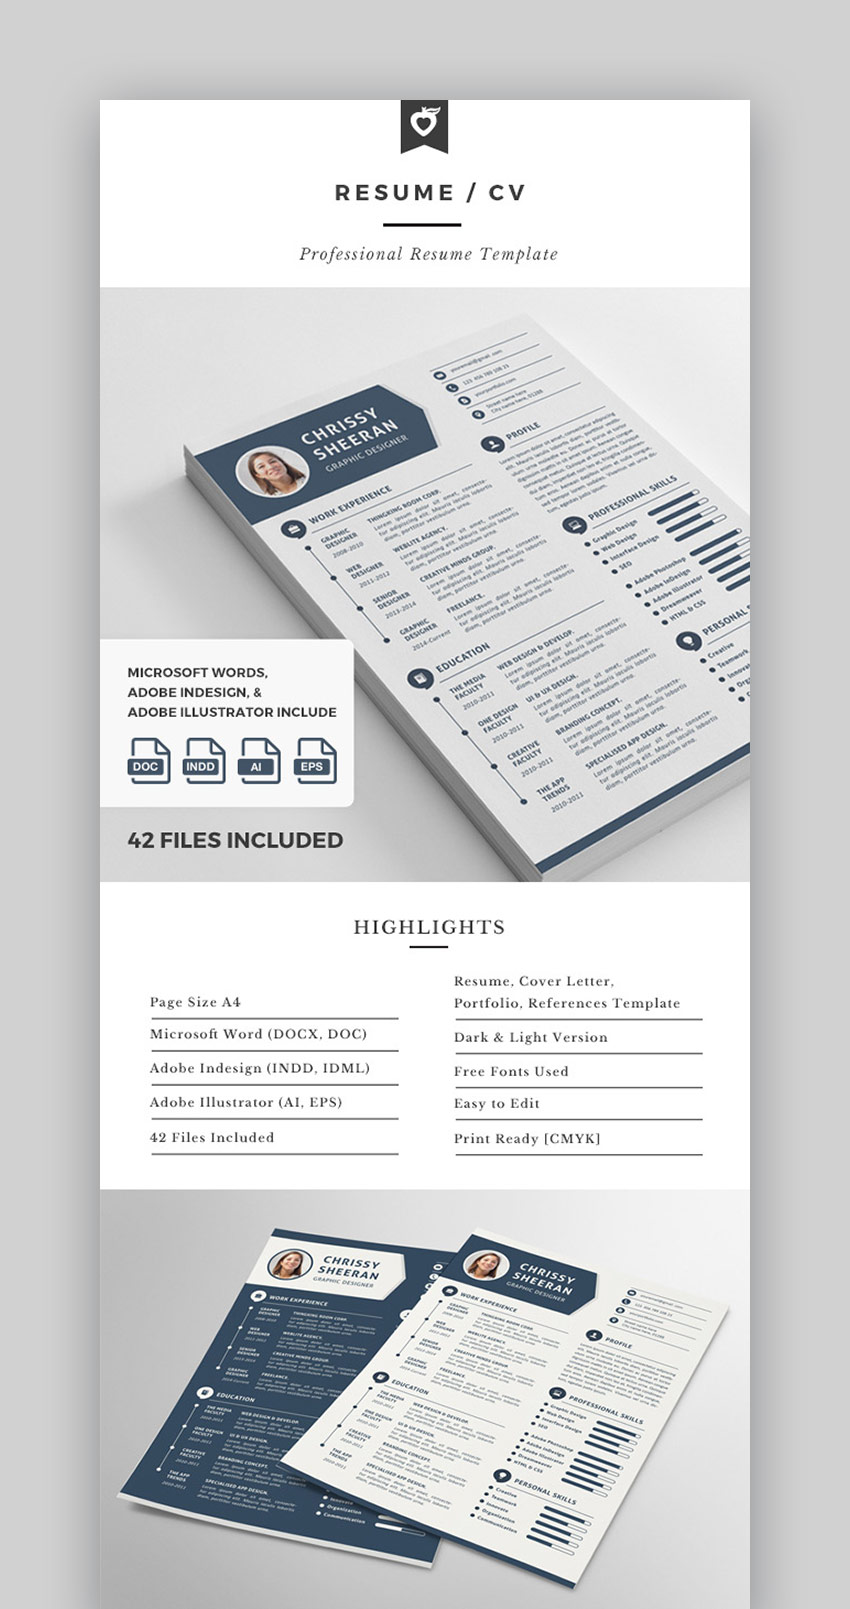 Visual Resume  CV With Graphics and Infographics